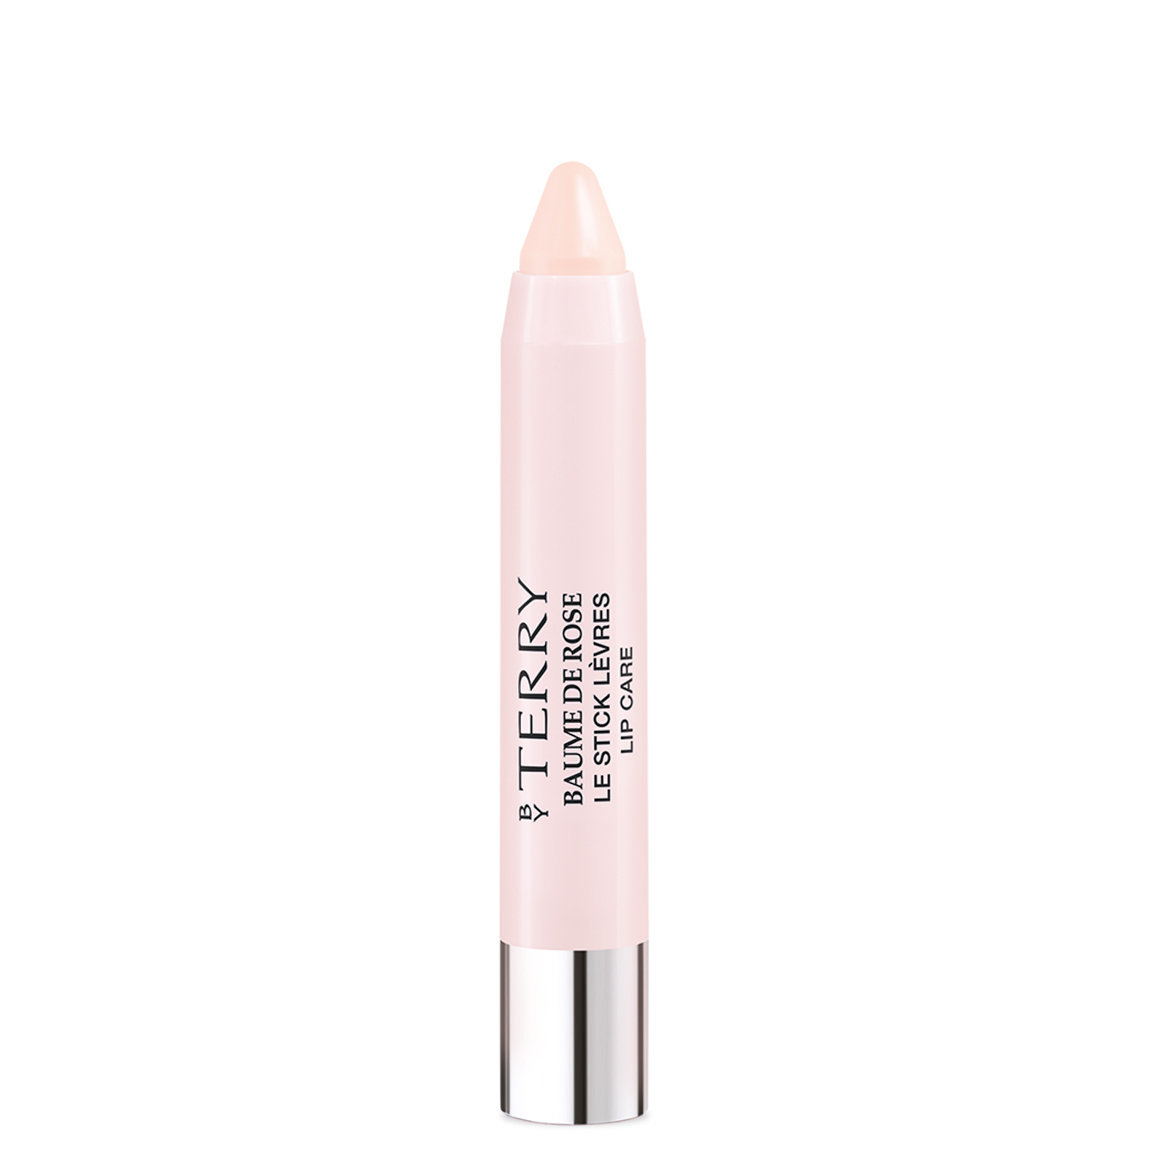 BY TERRY Baume de Rose Lip Care Crayon alternative view 1 - product swatch.